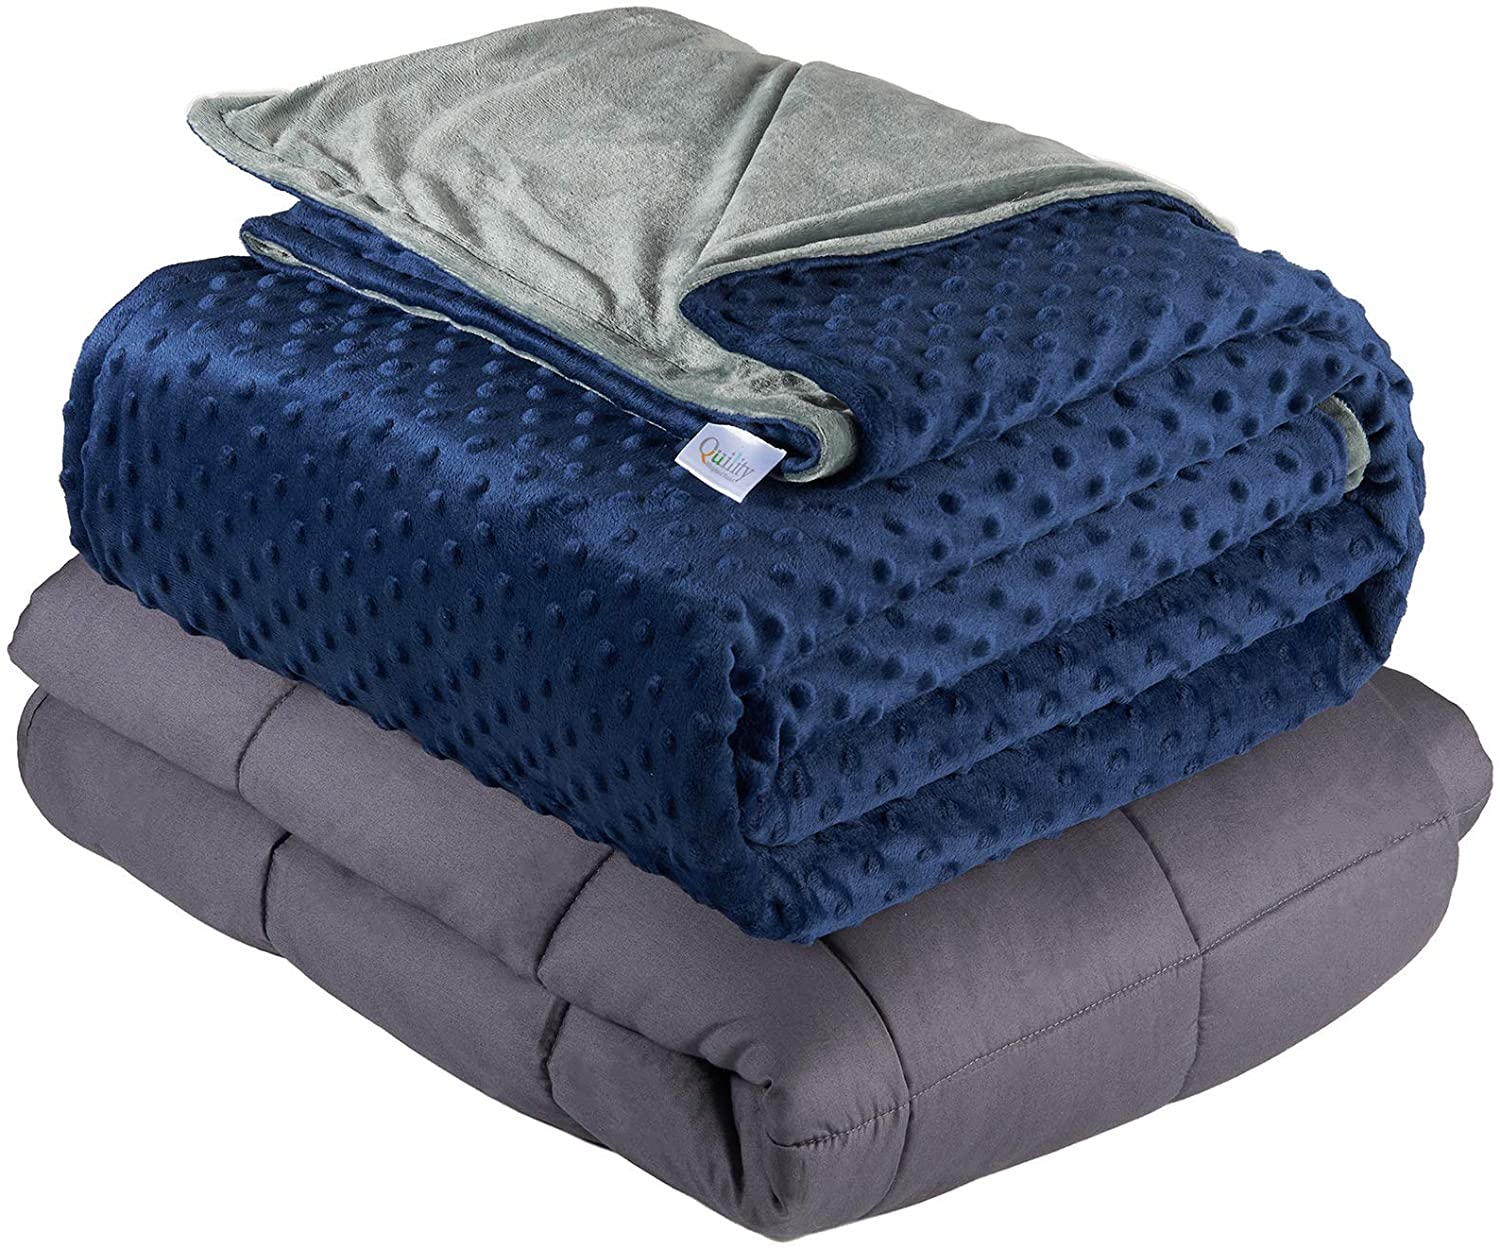 Quility Premium Adult Weighted Blanket, best christmas gifts for 2021